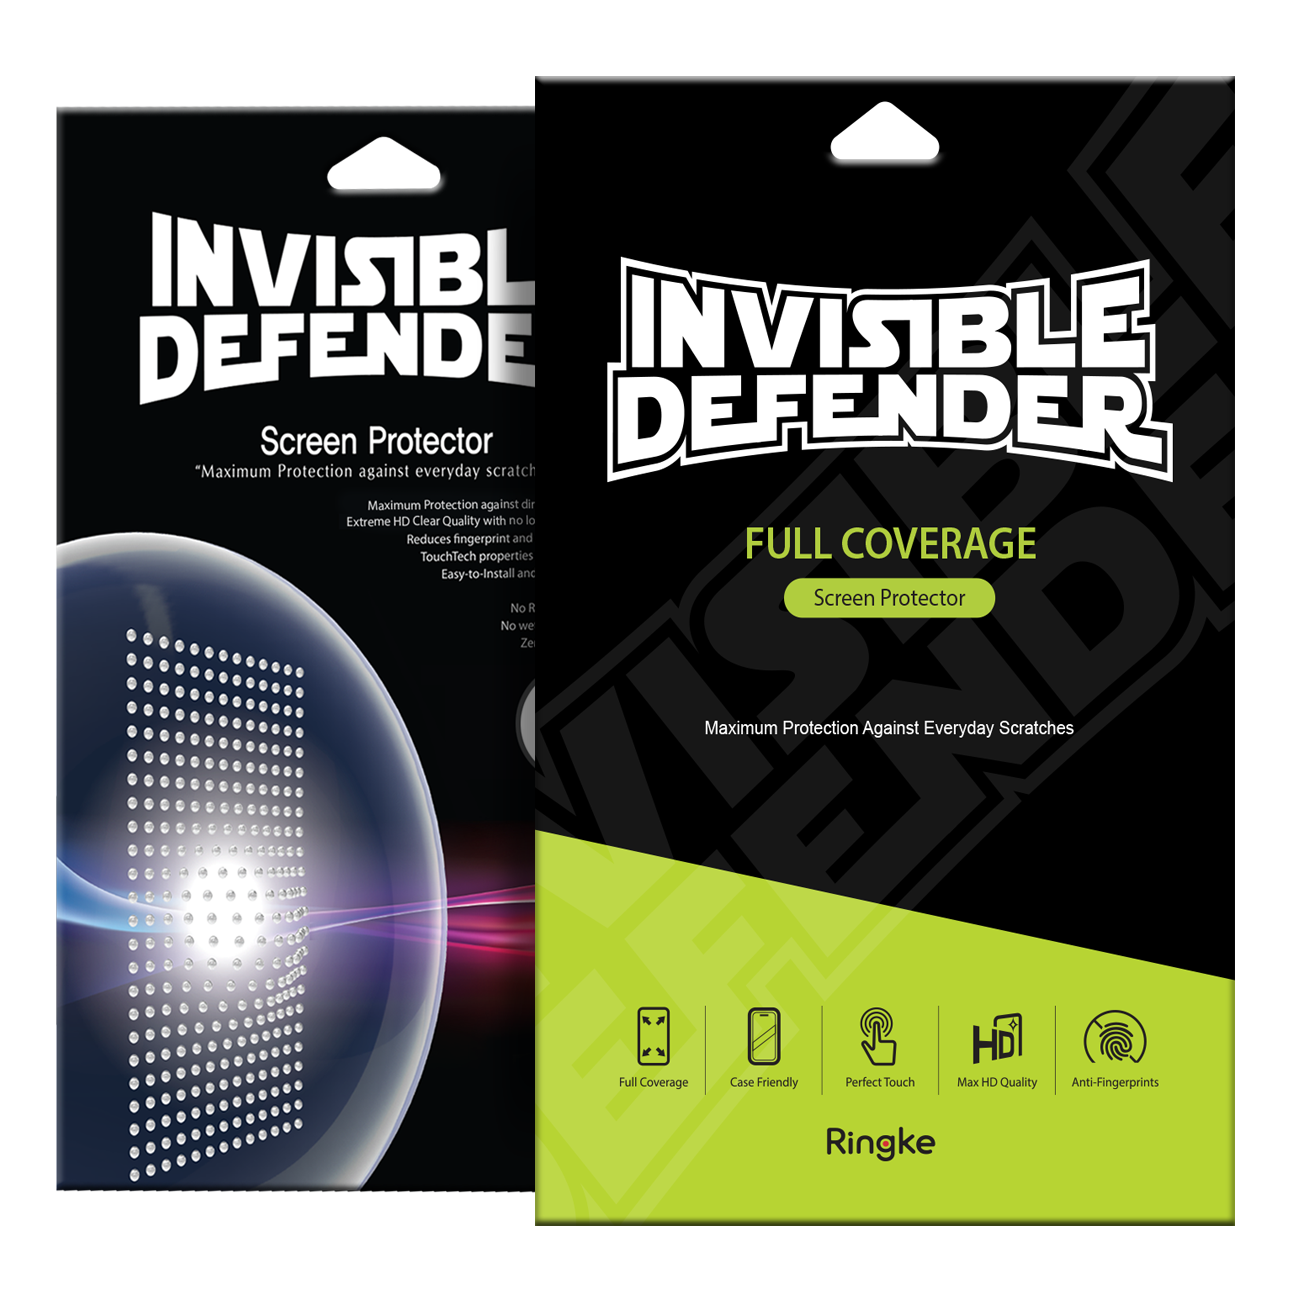 Invisible Defender Full Coverage